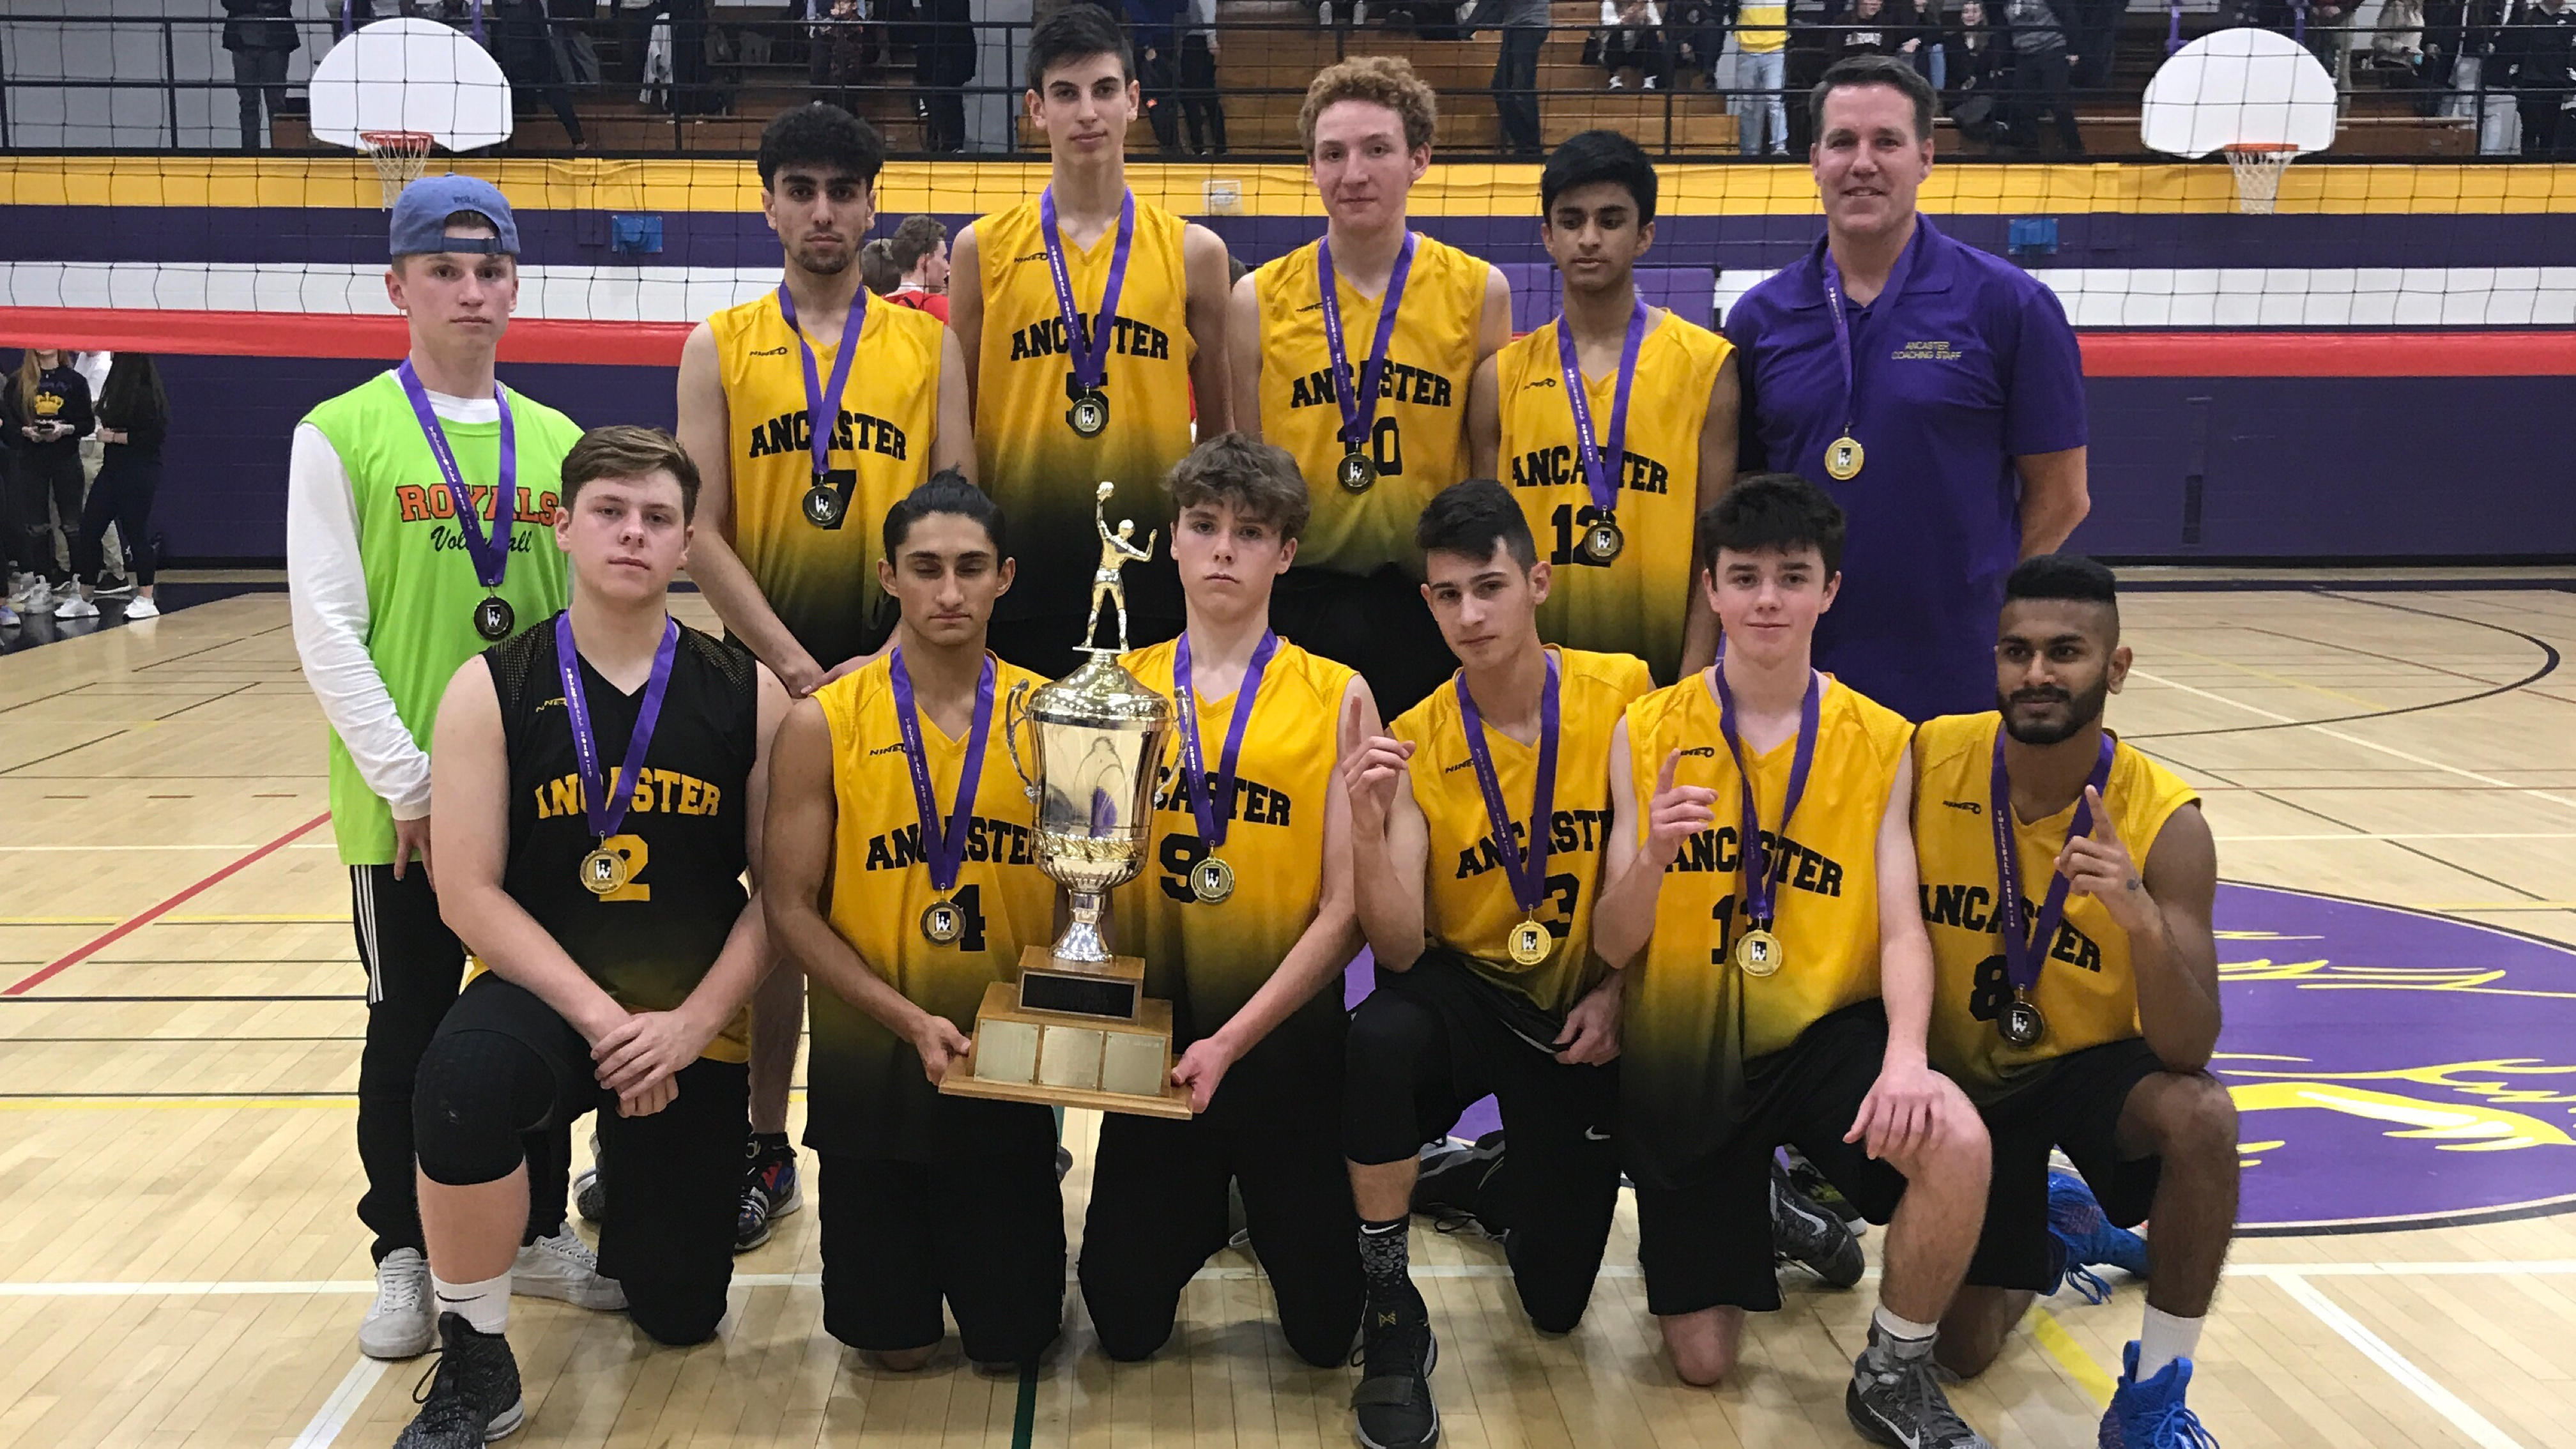 2018-19 HWIAC Senior Boys Volleyball Champions: Ancaster Royals